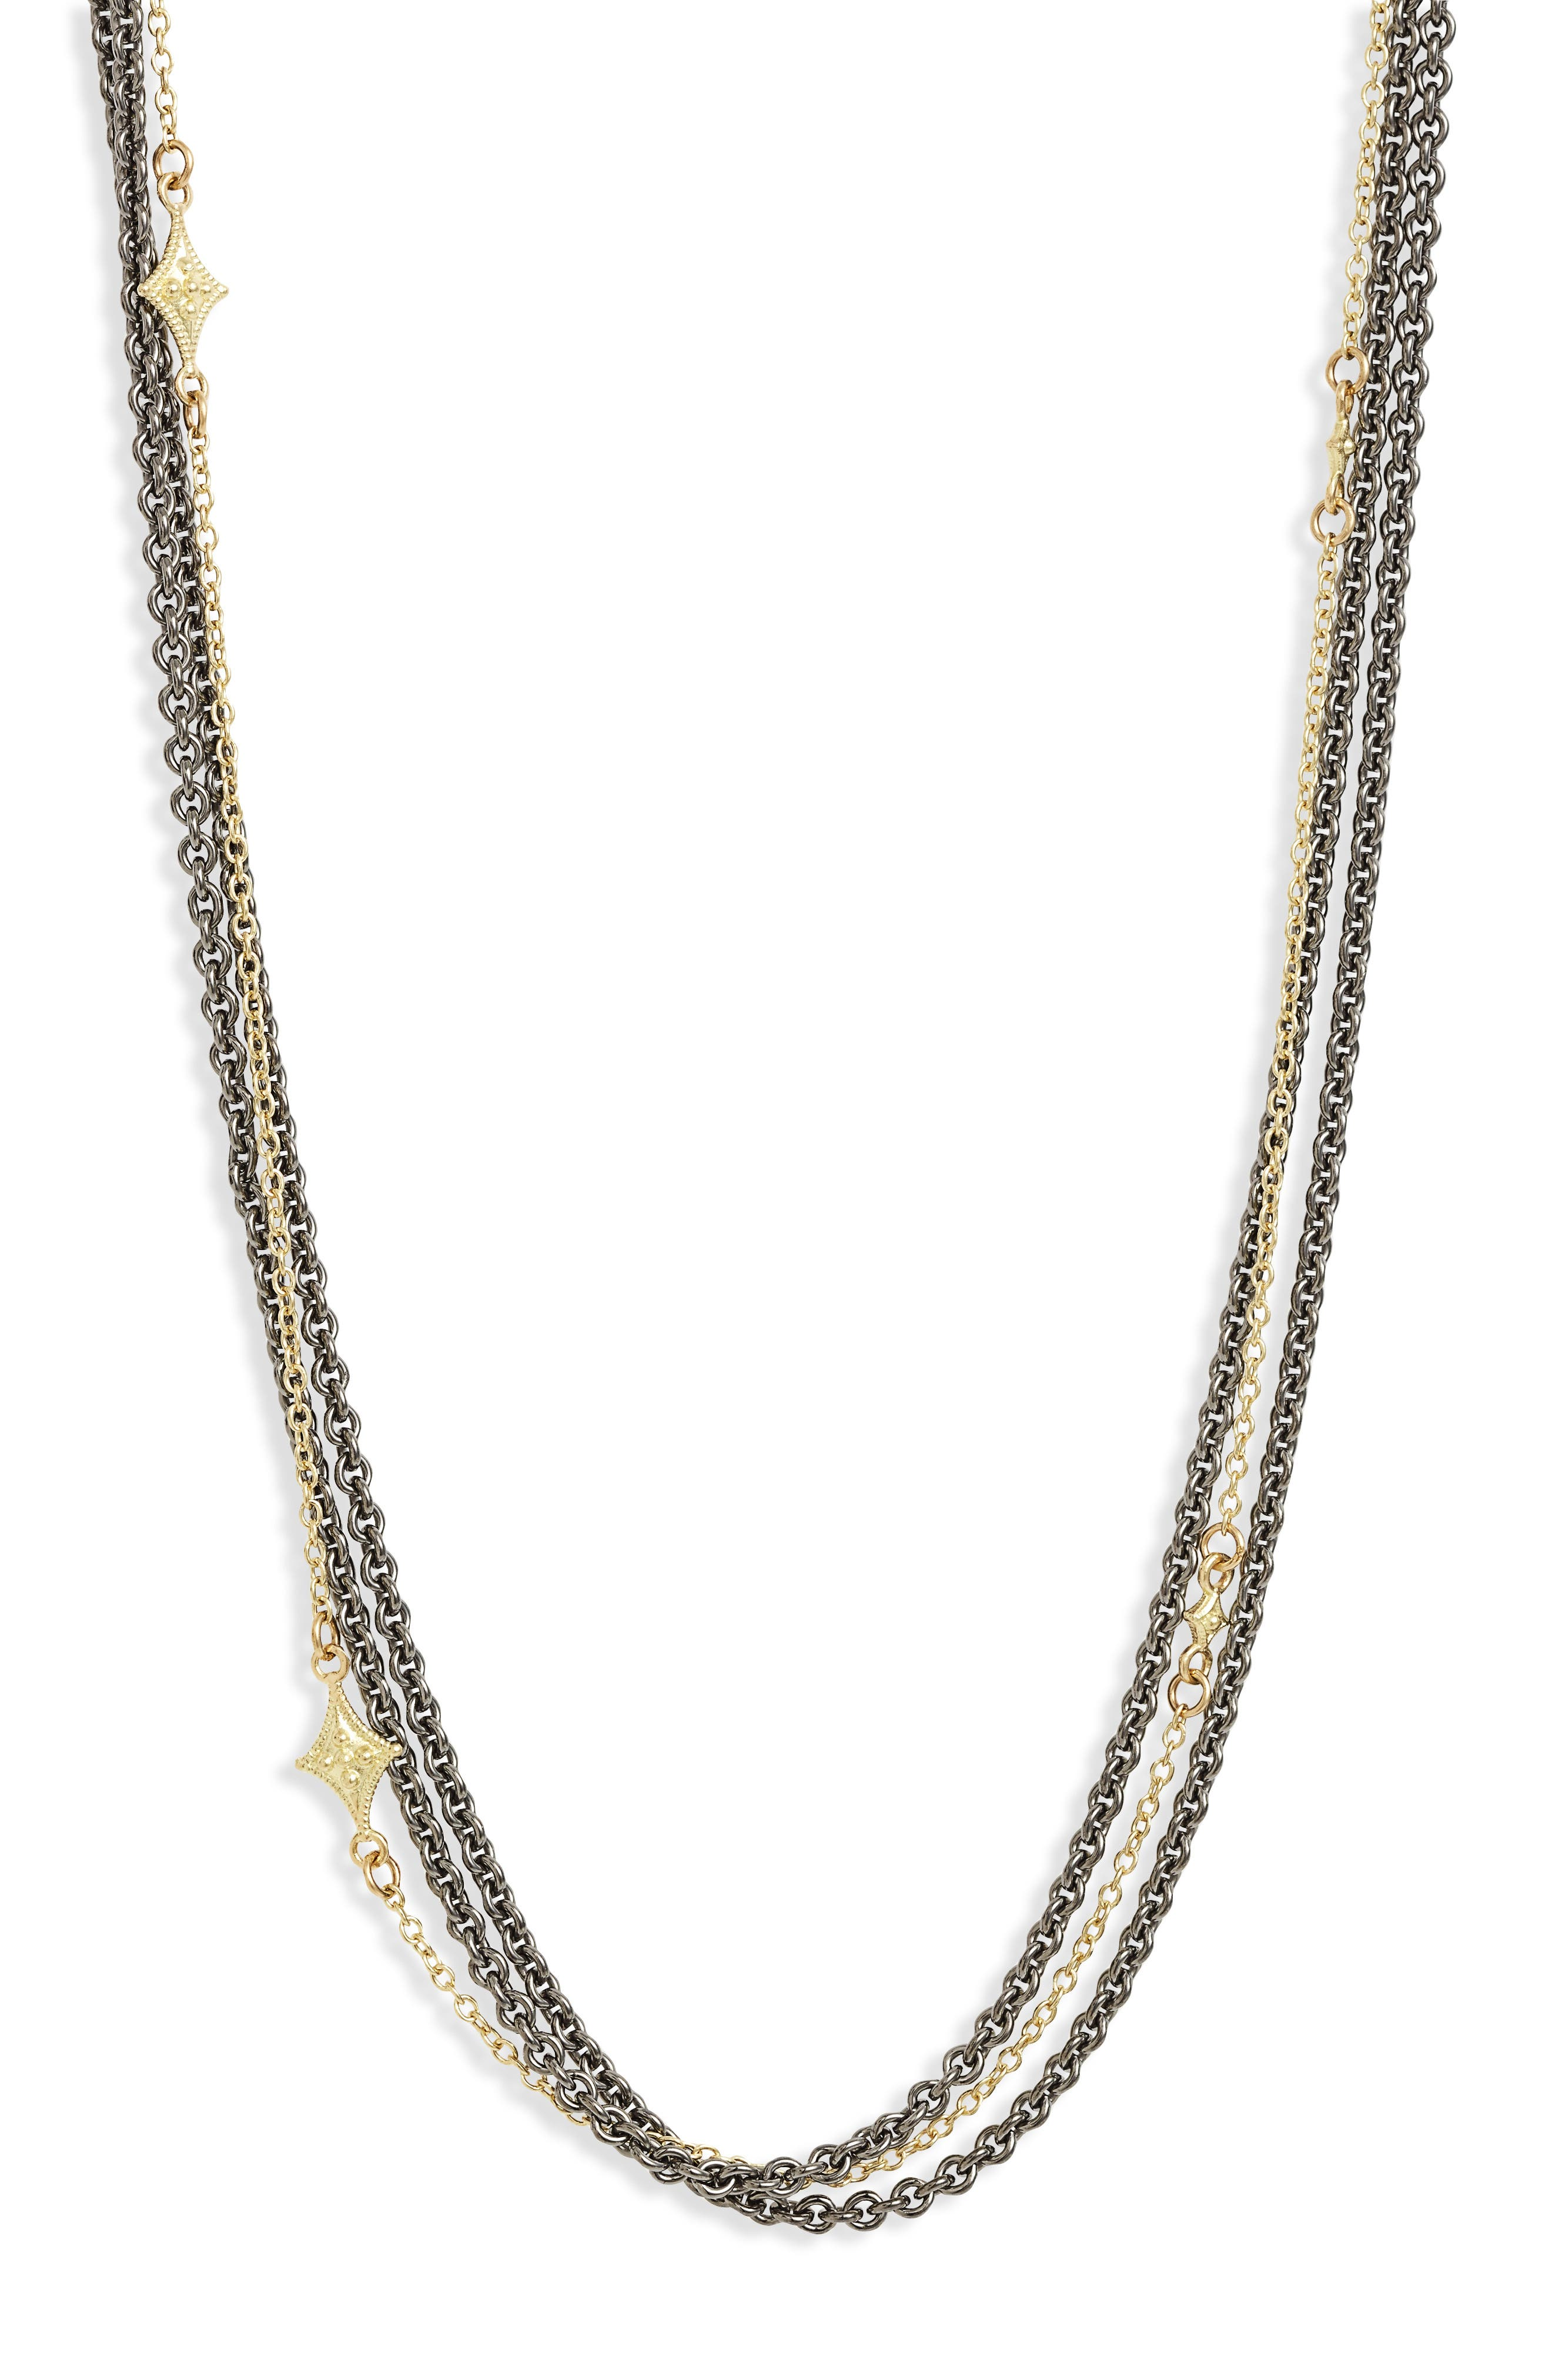 Old World Crivelli Collar Necklace,                             Alternate thumbnail 2, color,                             Gold